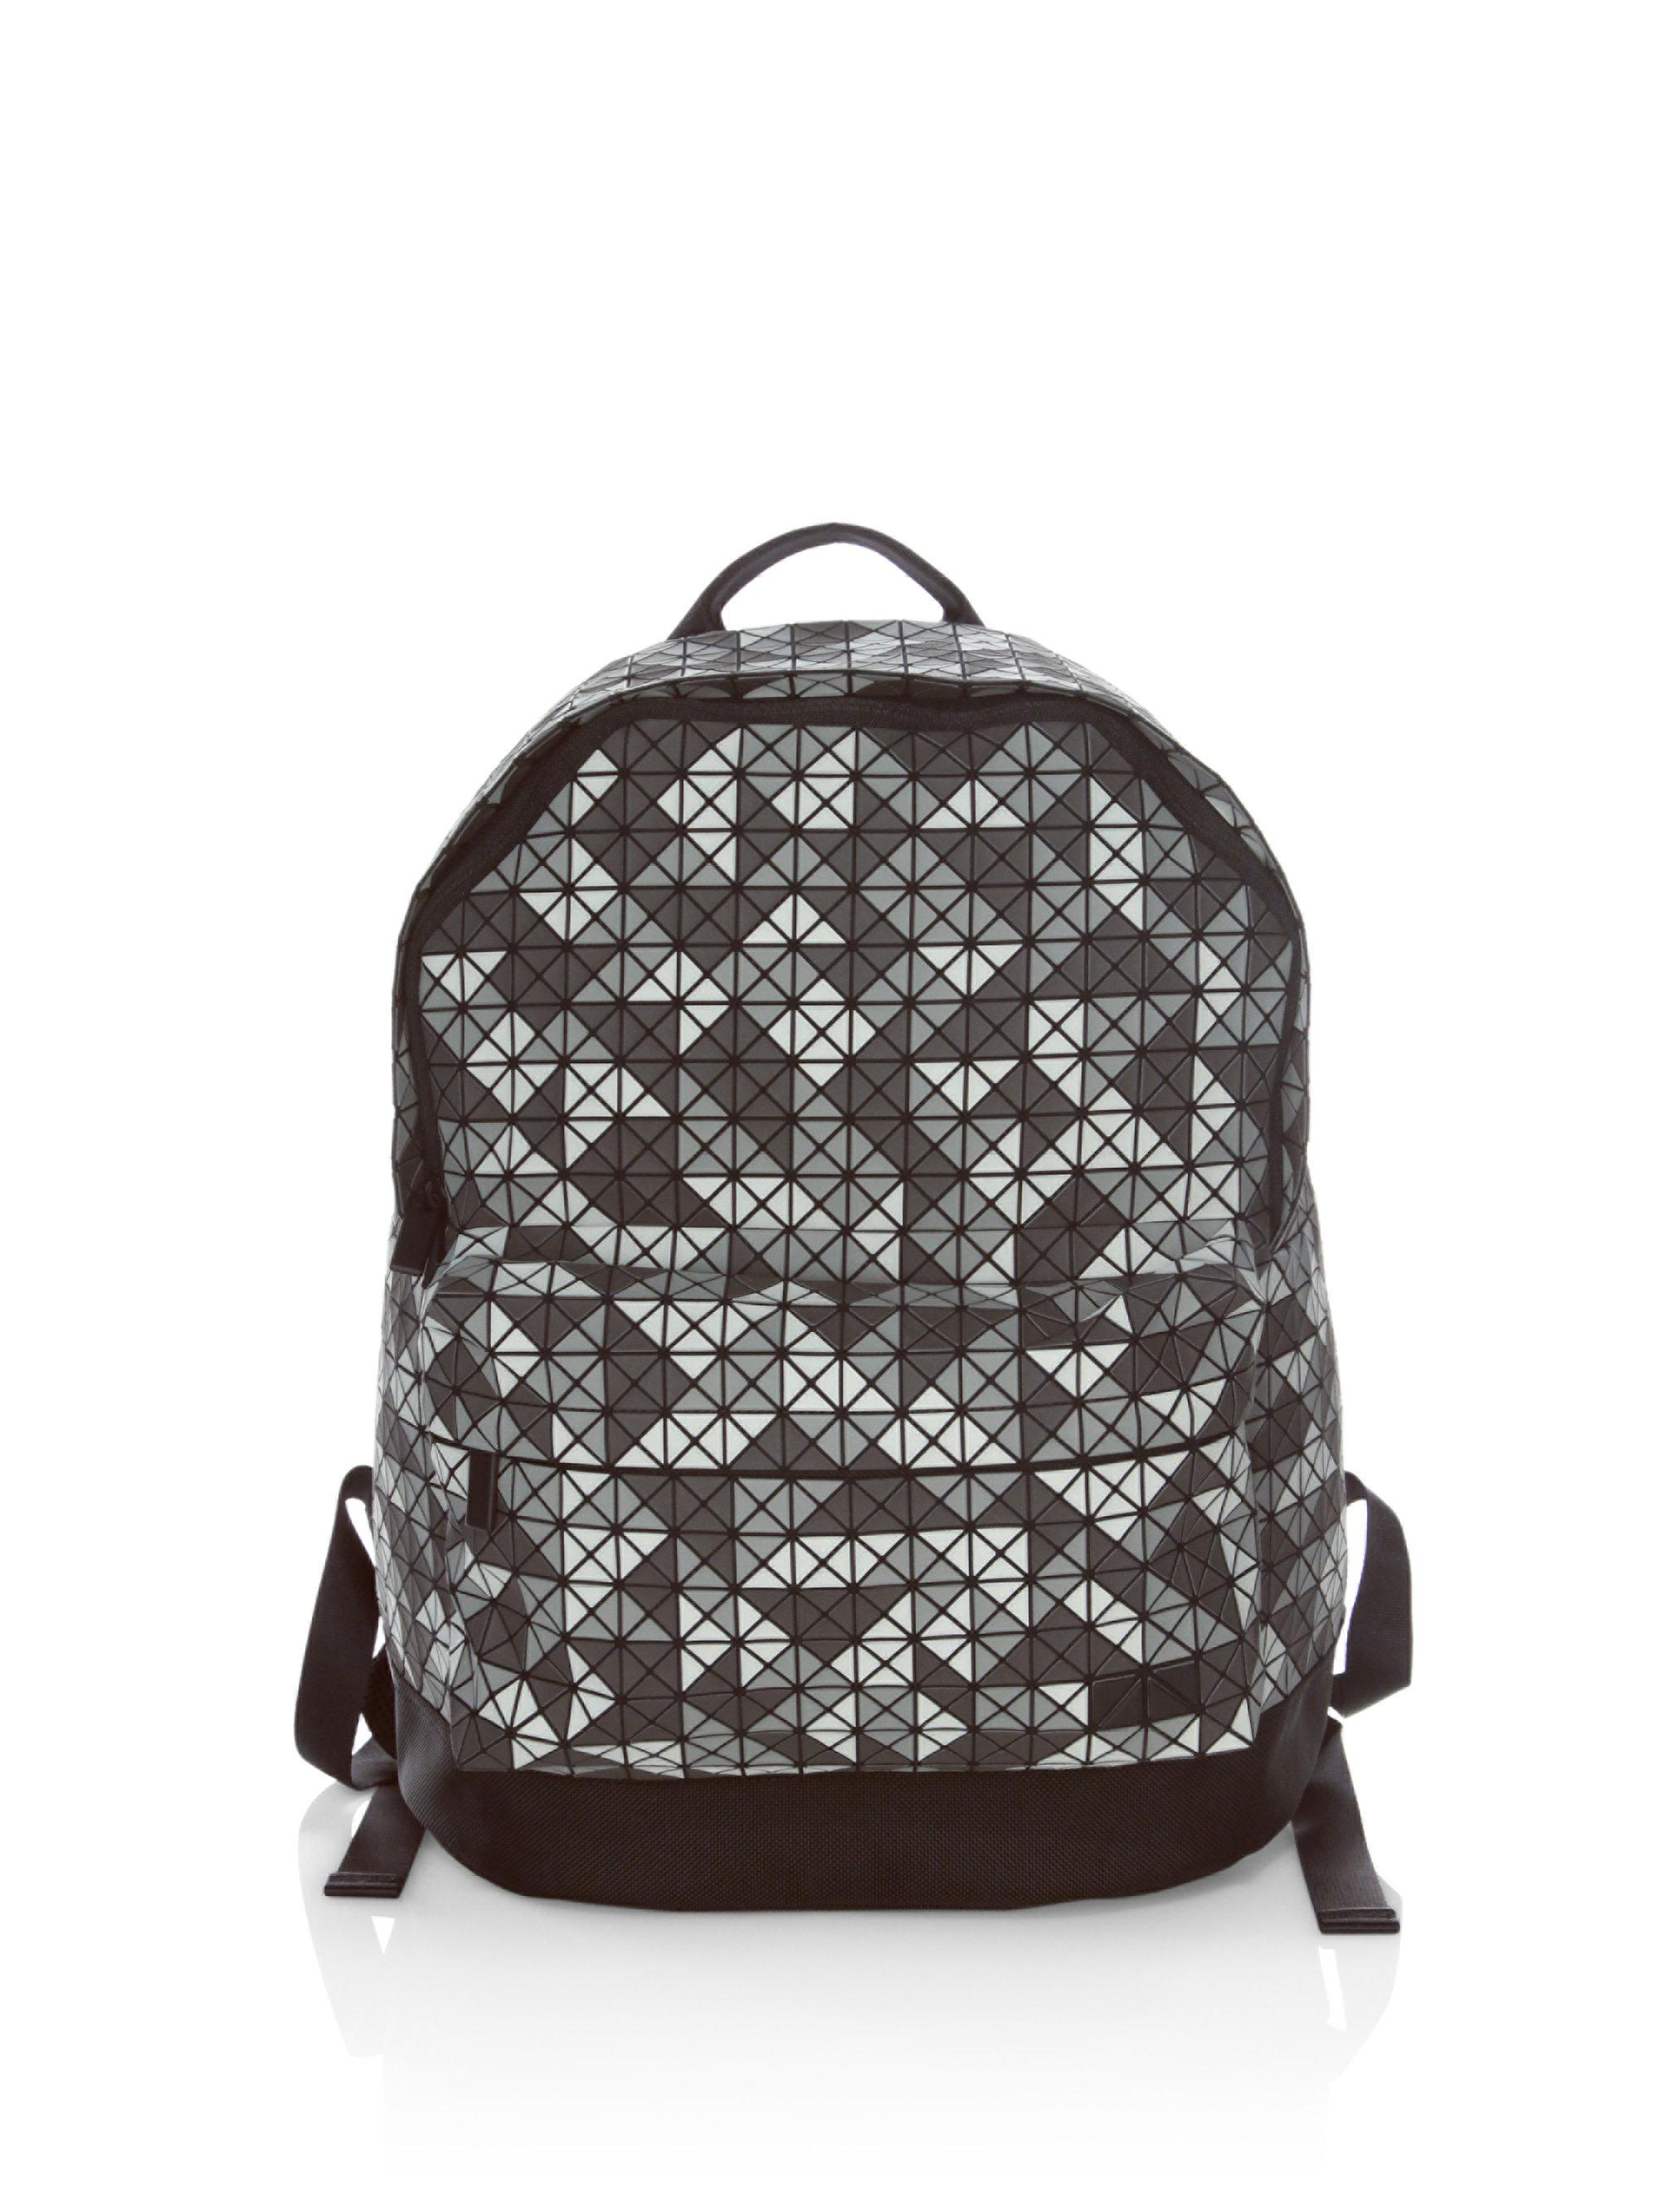 6f5c644b63 Lyst - Bao Bao Issey Miyake Symmetrical Daypack Backpack in Gray for Men